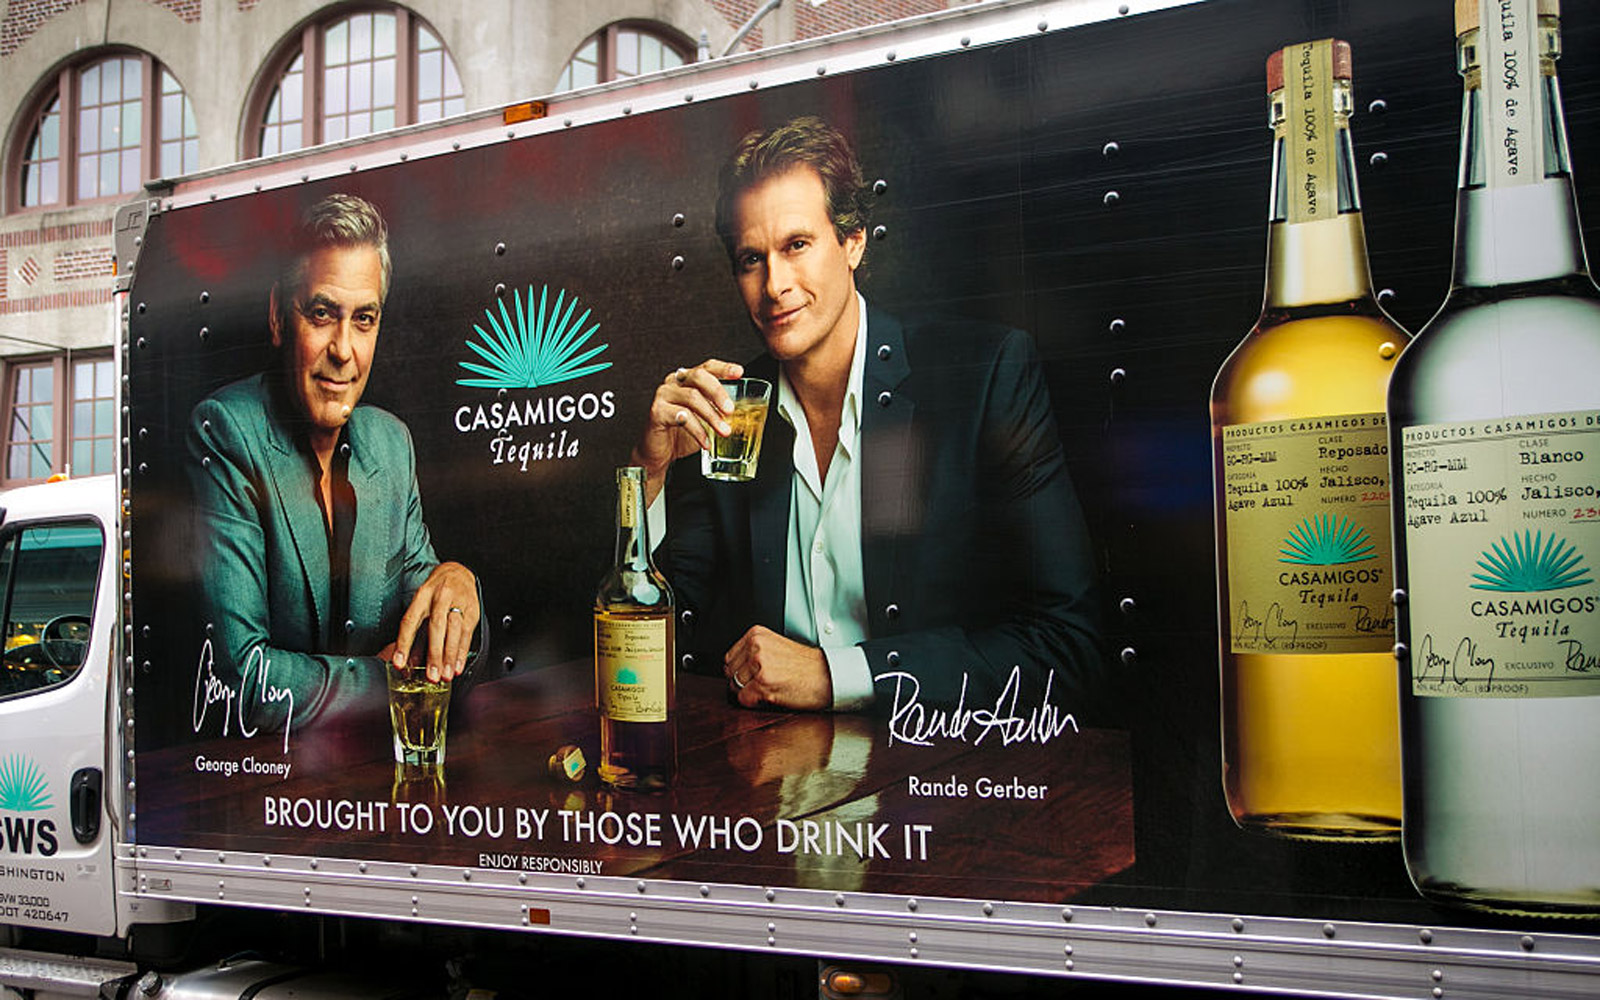 SEATTLE, WA - NOVEMBER 5: The side of a delivery truck features a billboard promoting George Clooney and Rande Gerber's new Casamigos Tequila on November 5, 2015, in Seattle, Washington. Seattle, located in King County, is the largest city in the Pacific